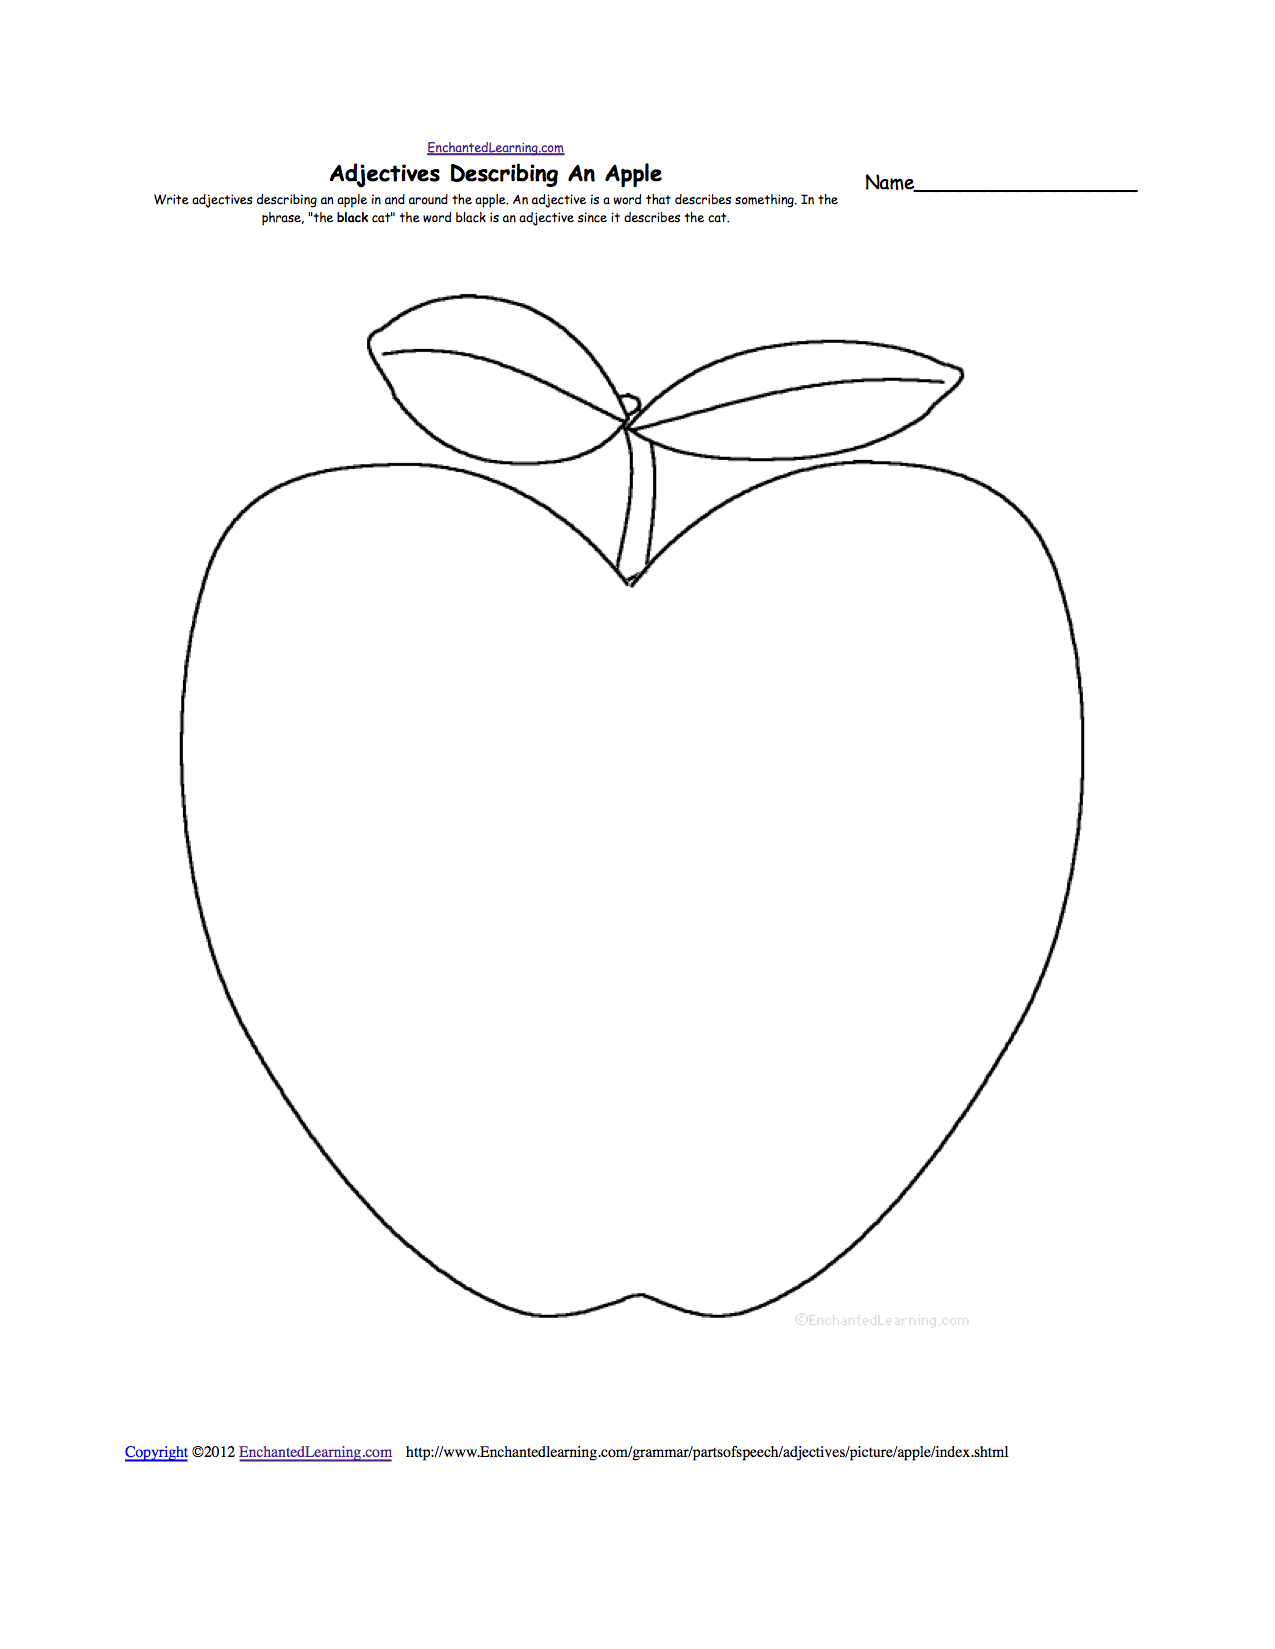 coloring apple worksheets for preschool free fruits and veggies coloring pages printable fruits apple coloring for preschool worksheets